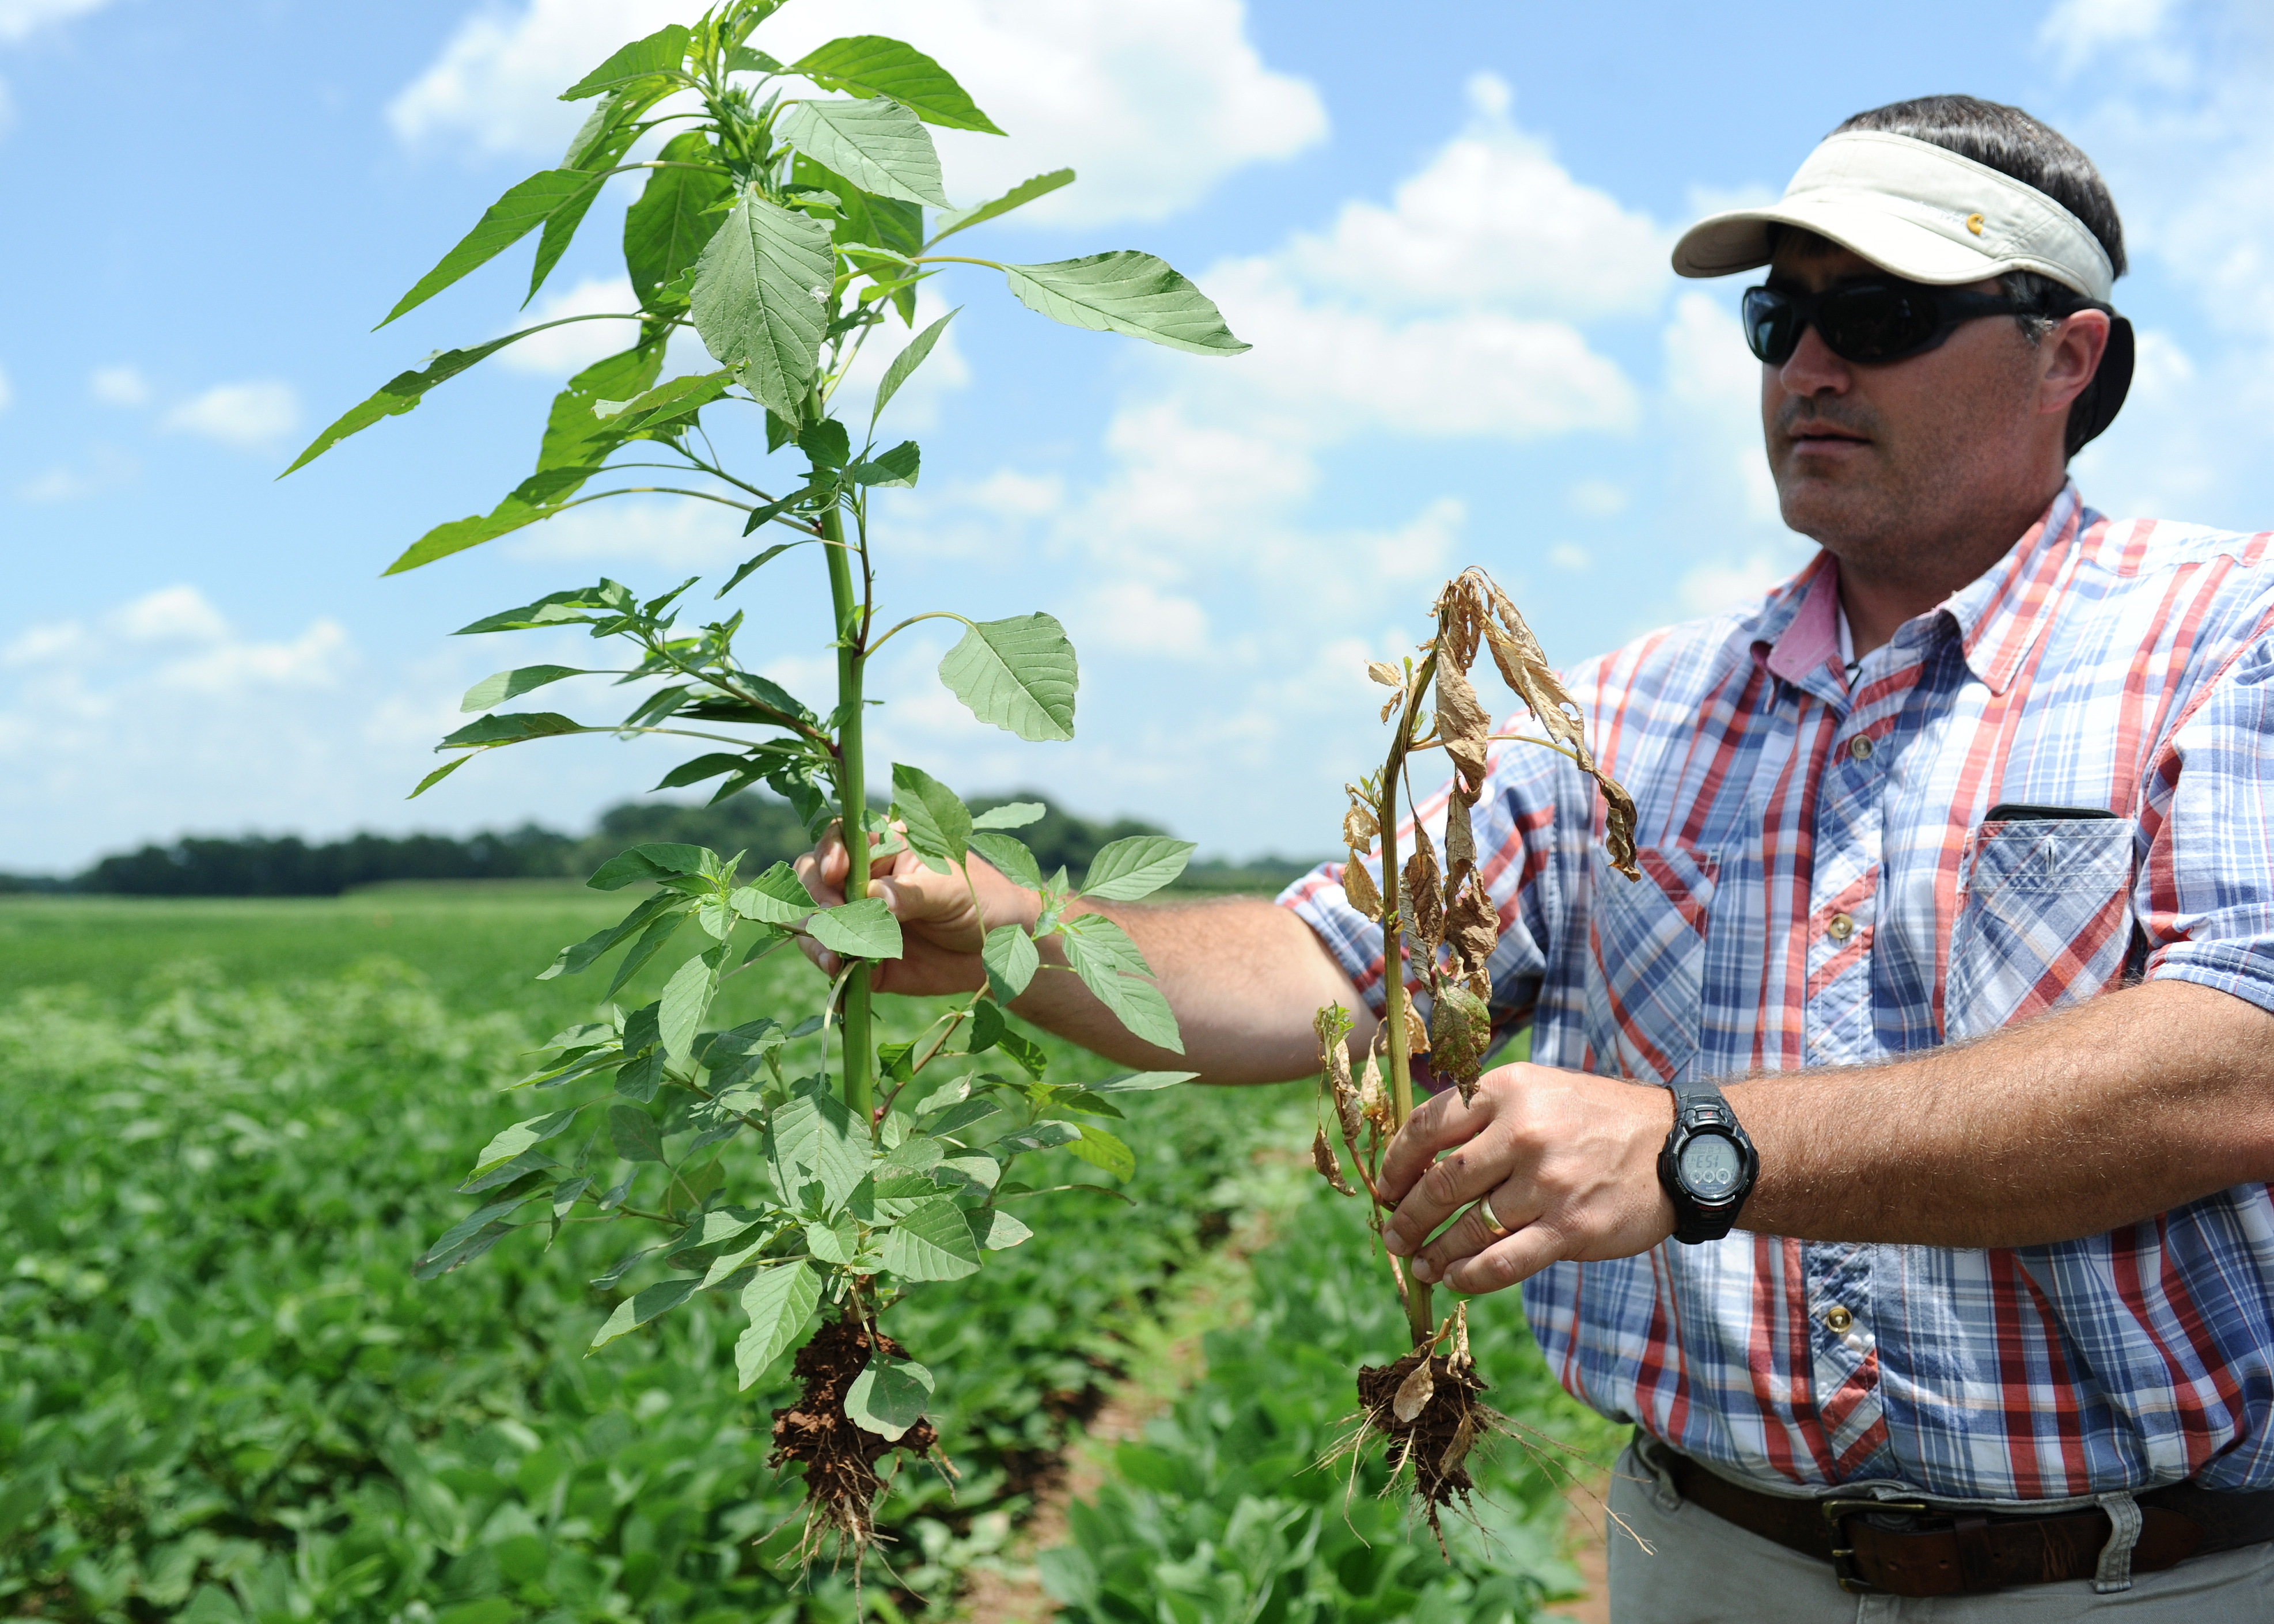 Unrelenting rains cause farmers major weed problems